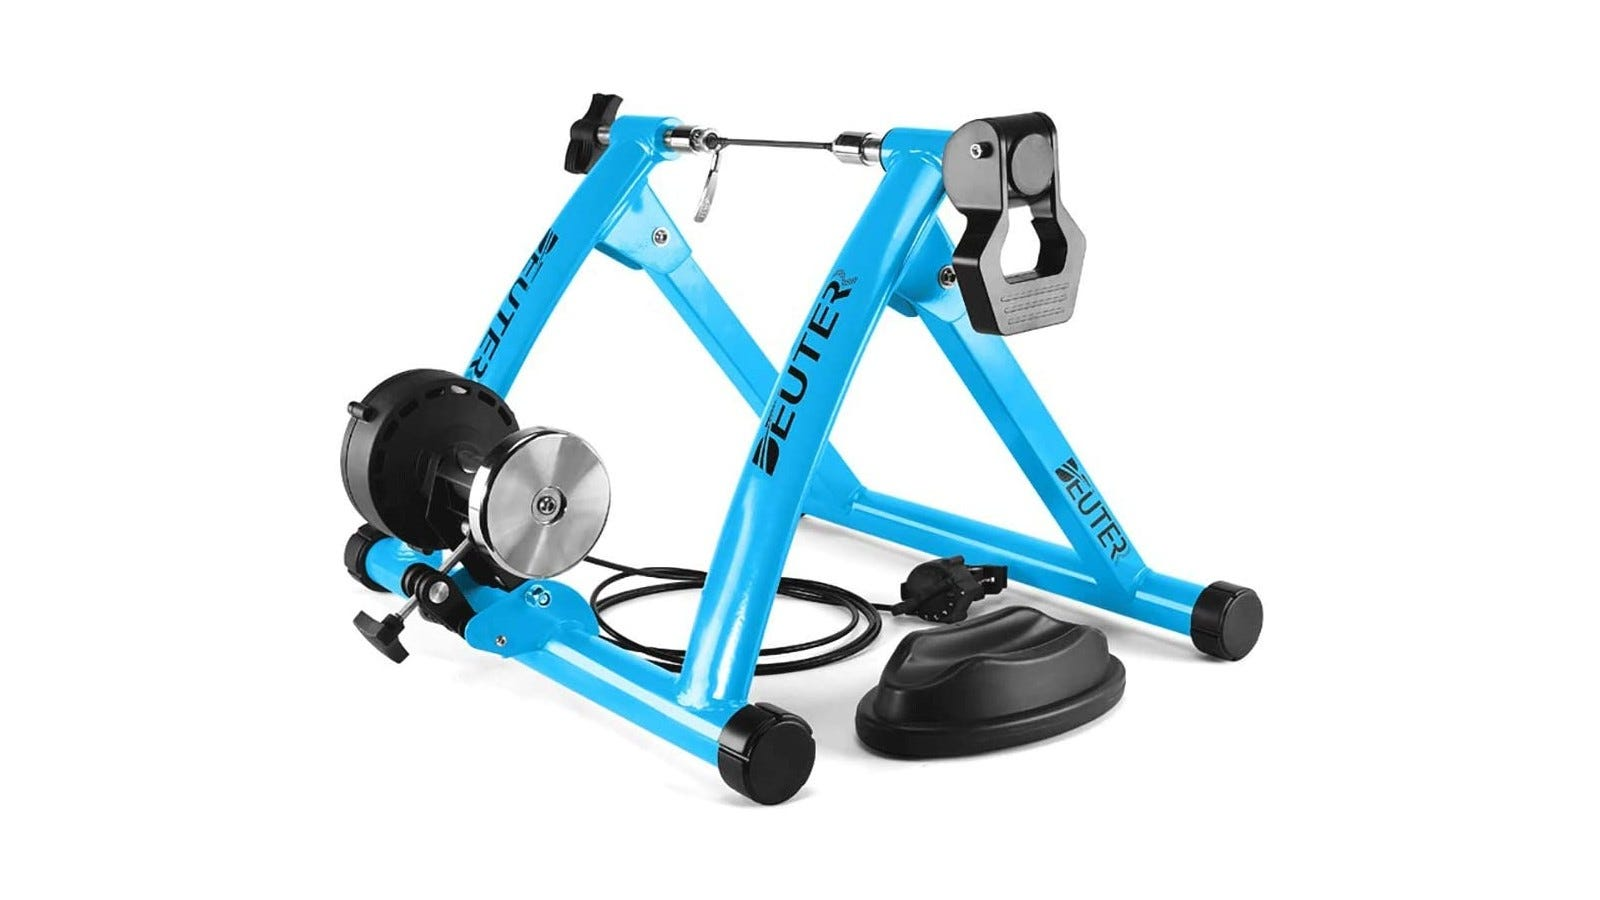 A blue bike trainer with black rubber feet.